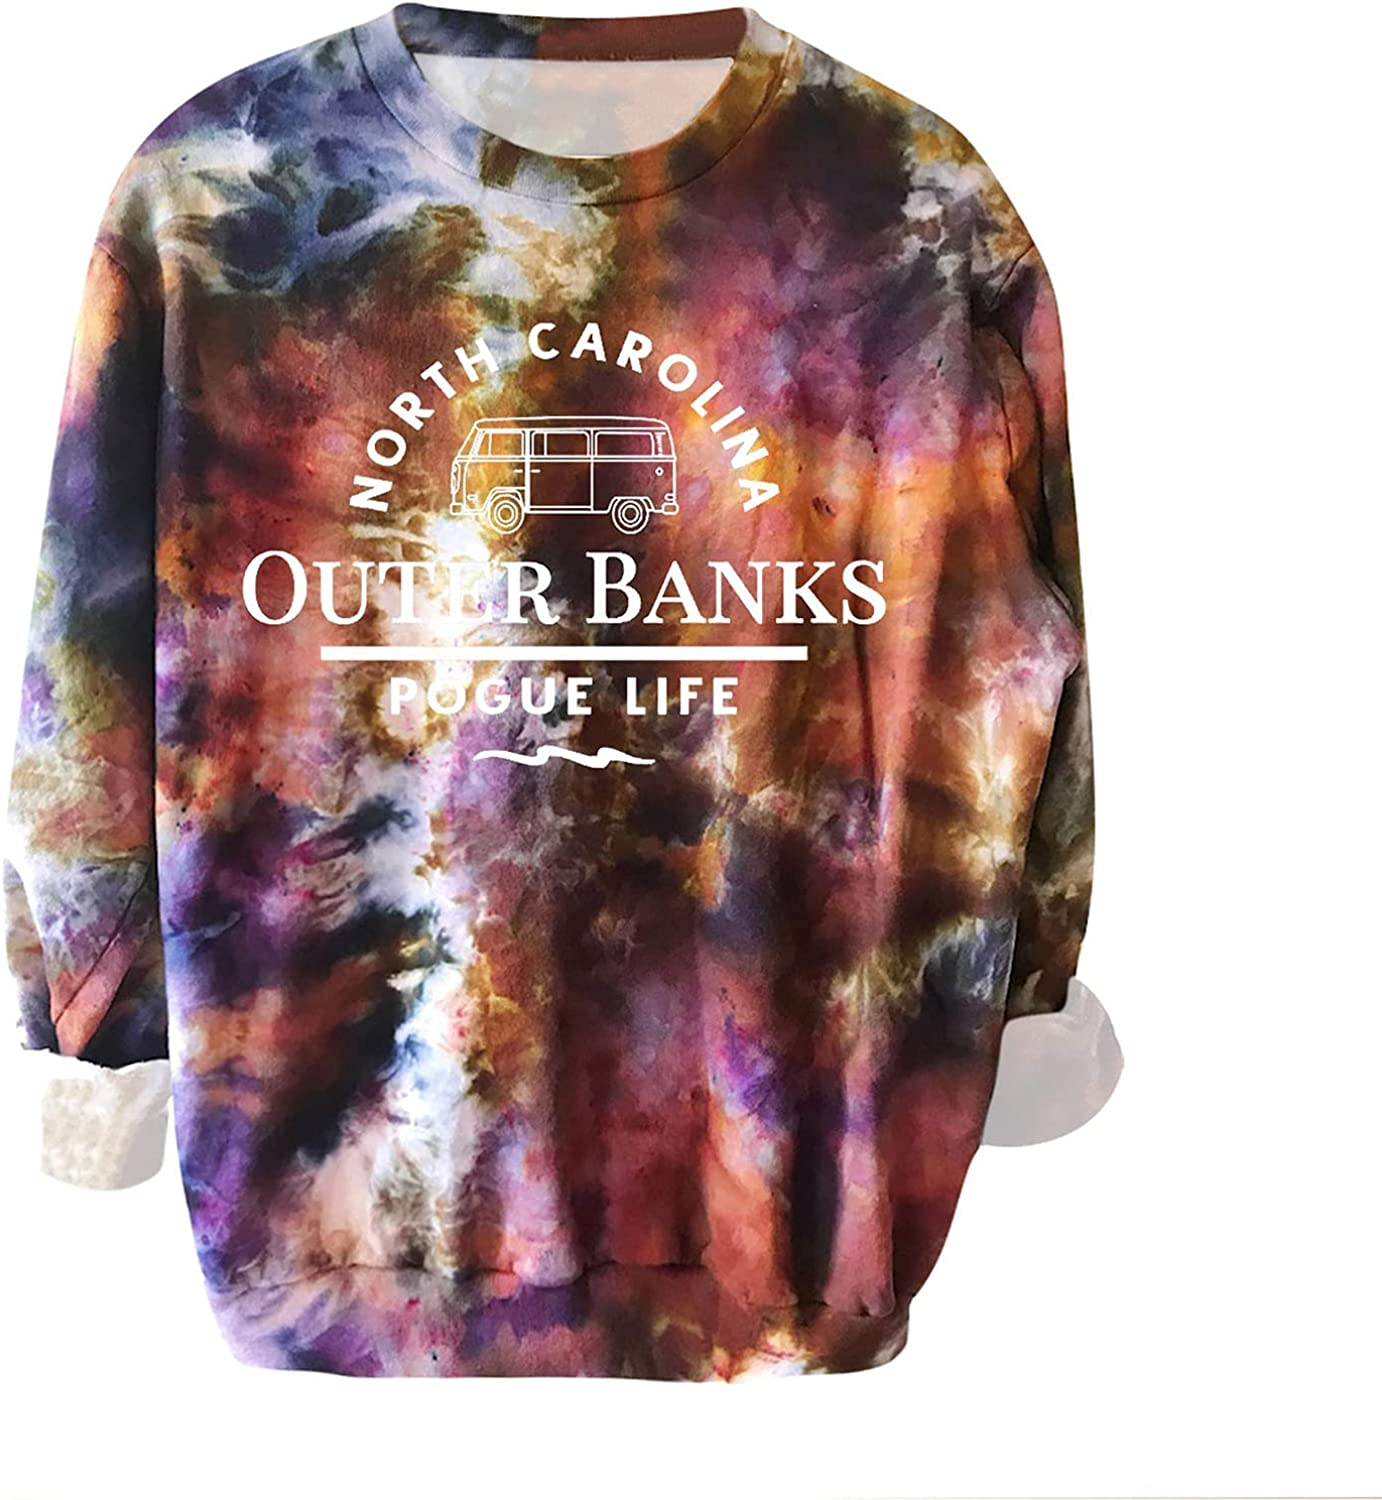 Women Fall Tie Dye Sweatshirt Casual Long Sleeve Crewneck Letter Print Pullover Loose Fit Workout Tops Athletic Shirt